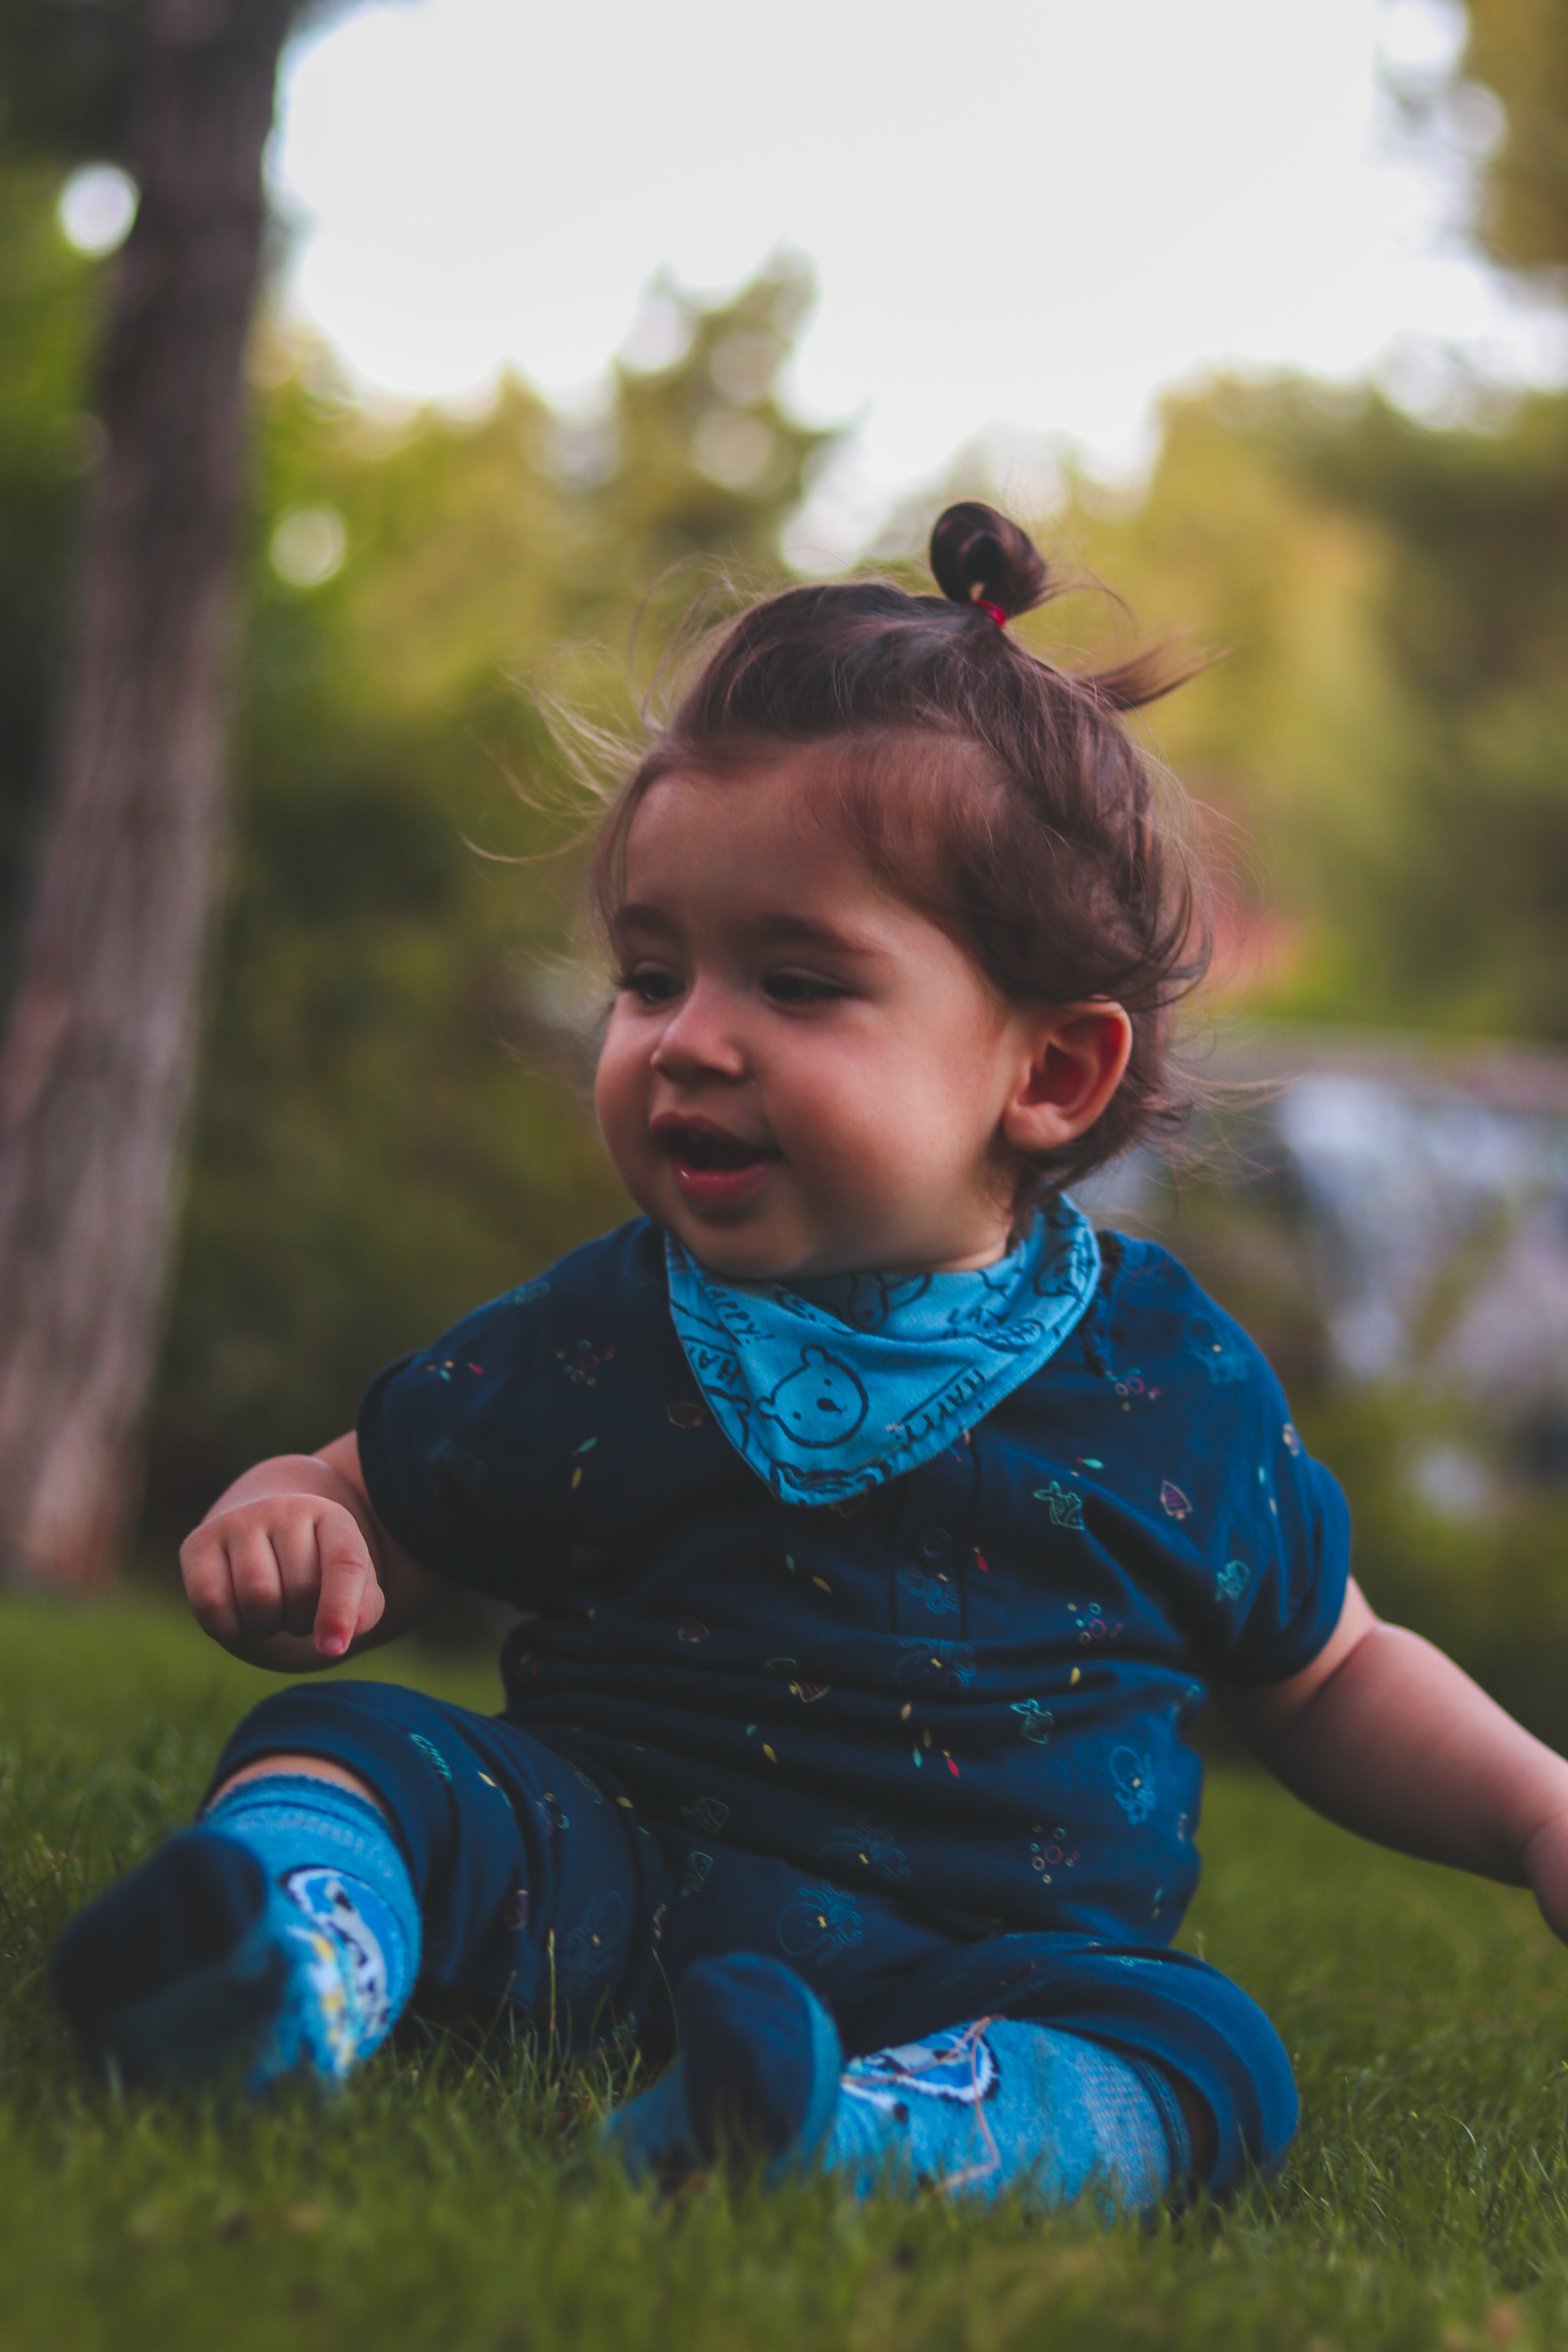 Photo of Baby Wearing Blue Onesie and Socks Sitting on Green Grass